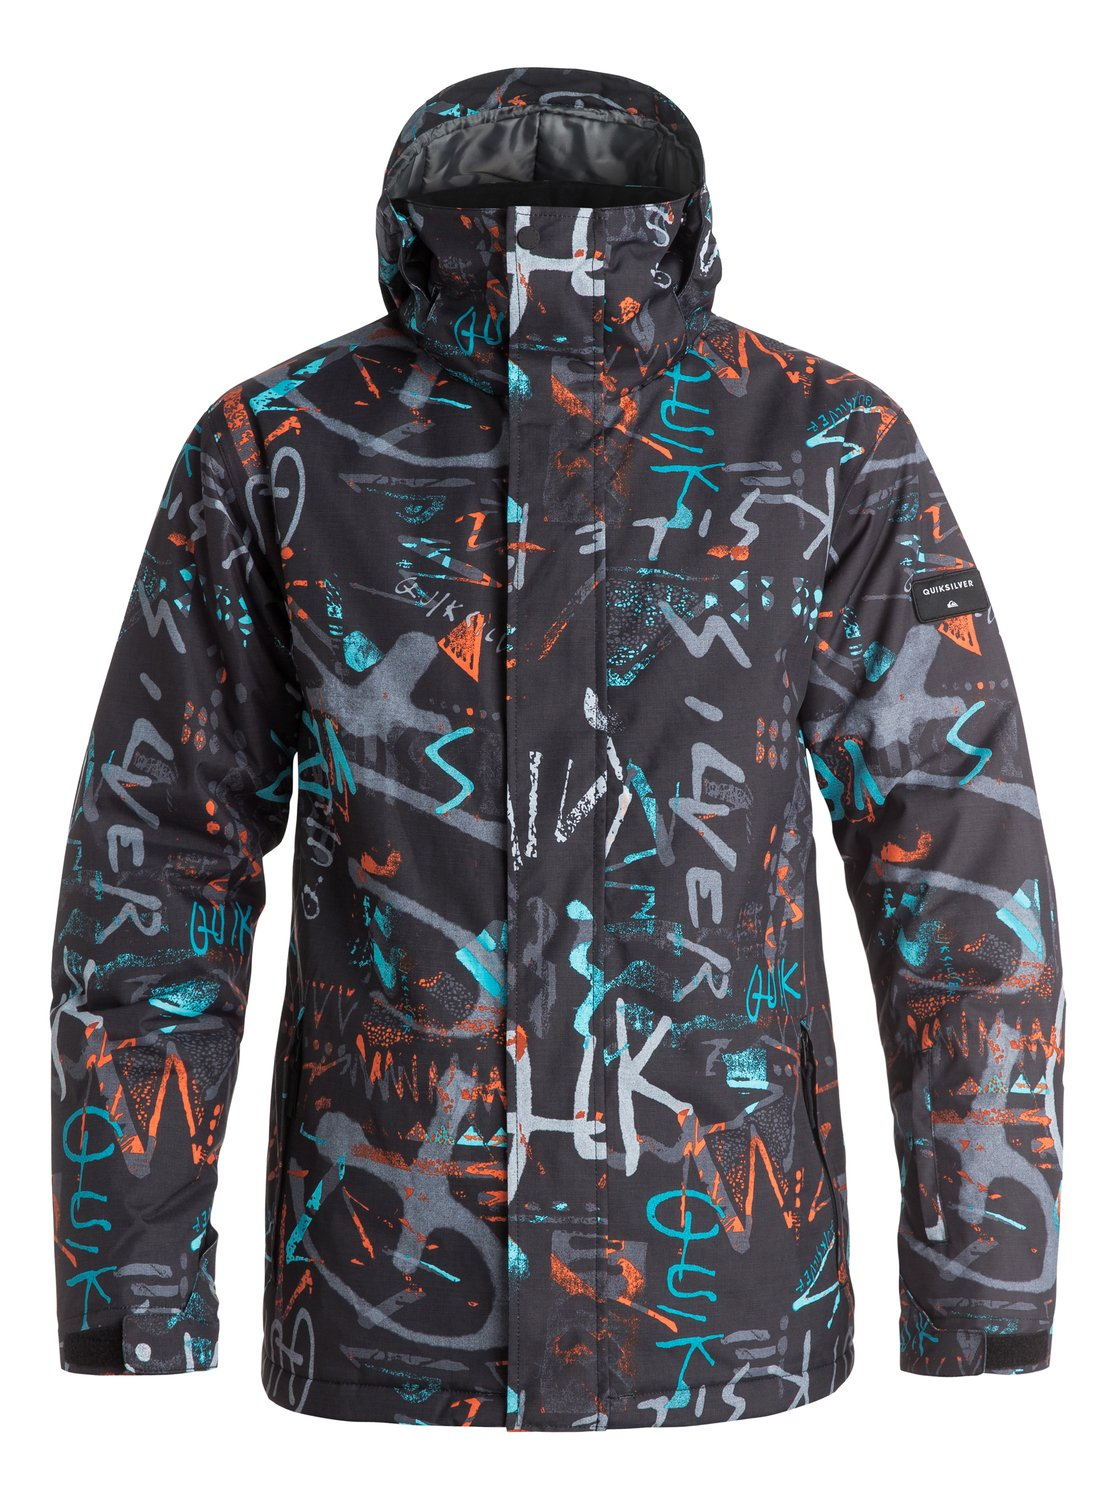 Сноубордическая куртка Mission PrintedThe Mission Printed snow jacket for men features 10K Quiksilver DryFlight® technology waterproofing and a relaxed easy-to-wear regular fit thats great for layering. The bold designs look after style while Warmflight® level 2 insulation takes care of the low-bulk warmth. The shell has been critically taped for extra protection in the most exposed areas.<br>